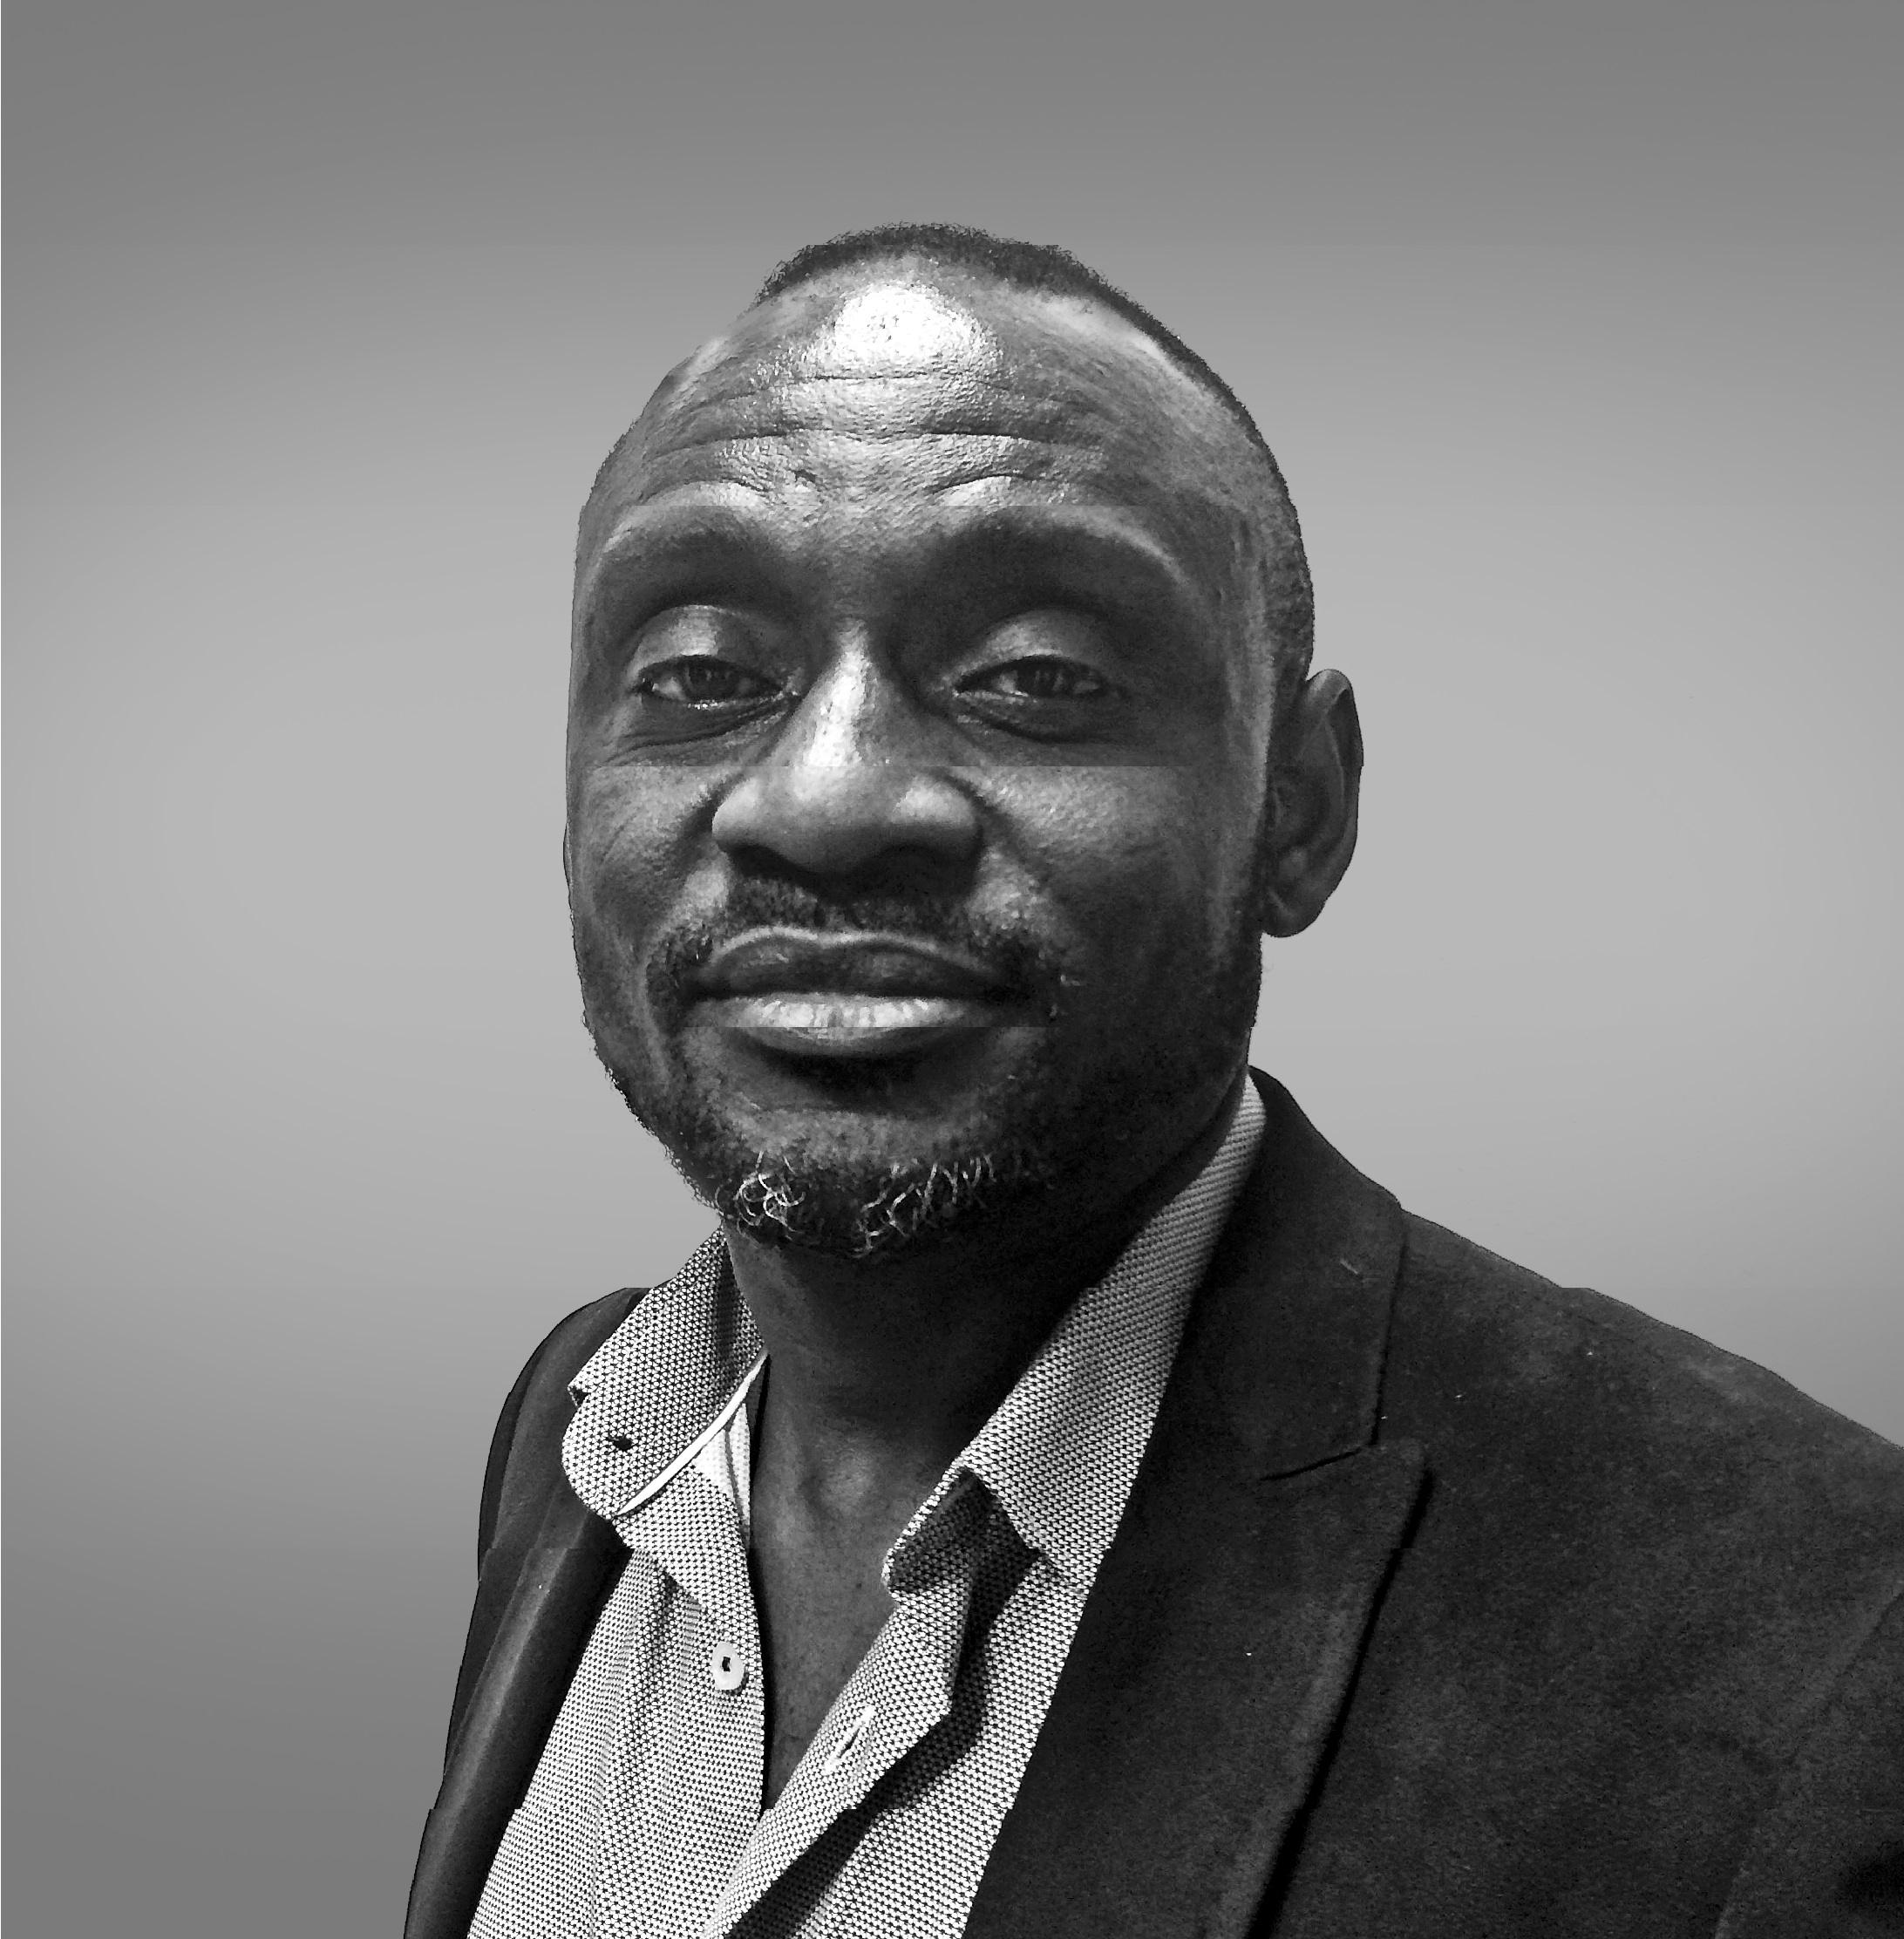 Charles is Director of Amsons Electrical Contractors Ltd. Amsons have decades of experience managing complex electrical installation projects in performance venues in both the UK and Africa, including the Ghanaian High Commission in London, UK.